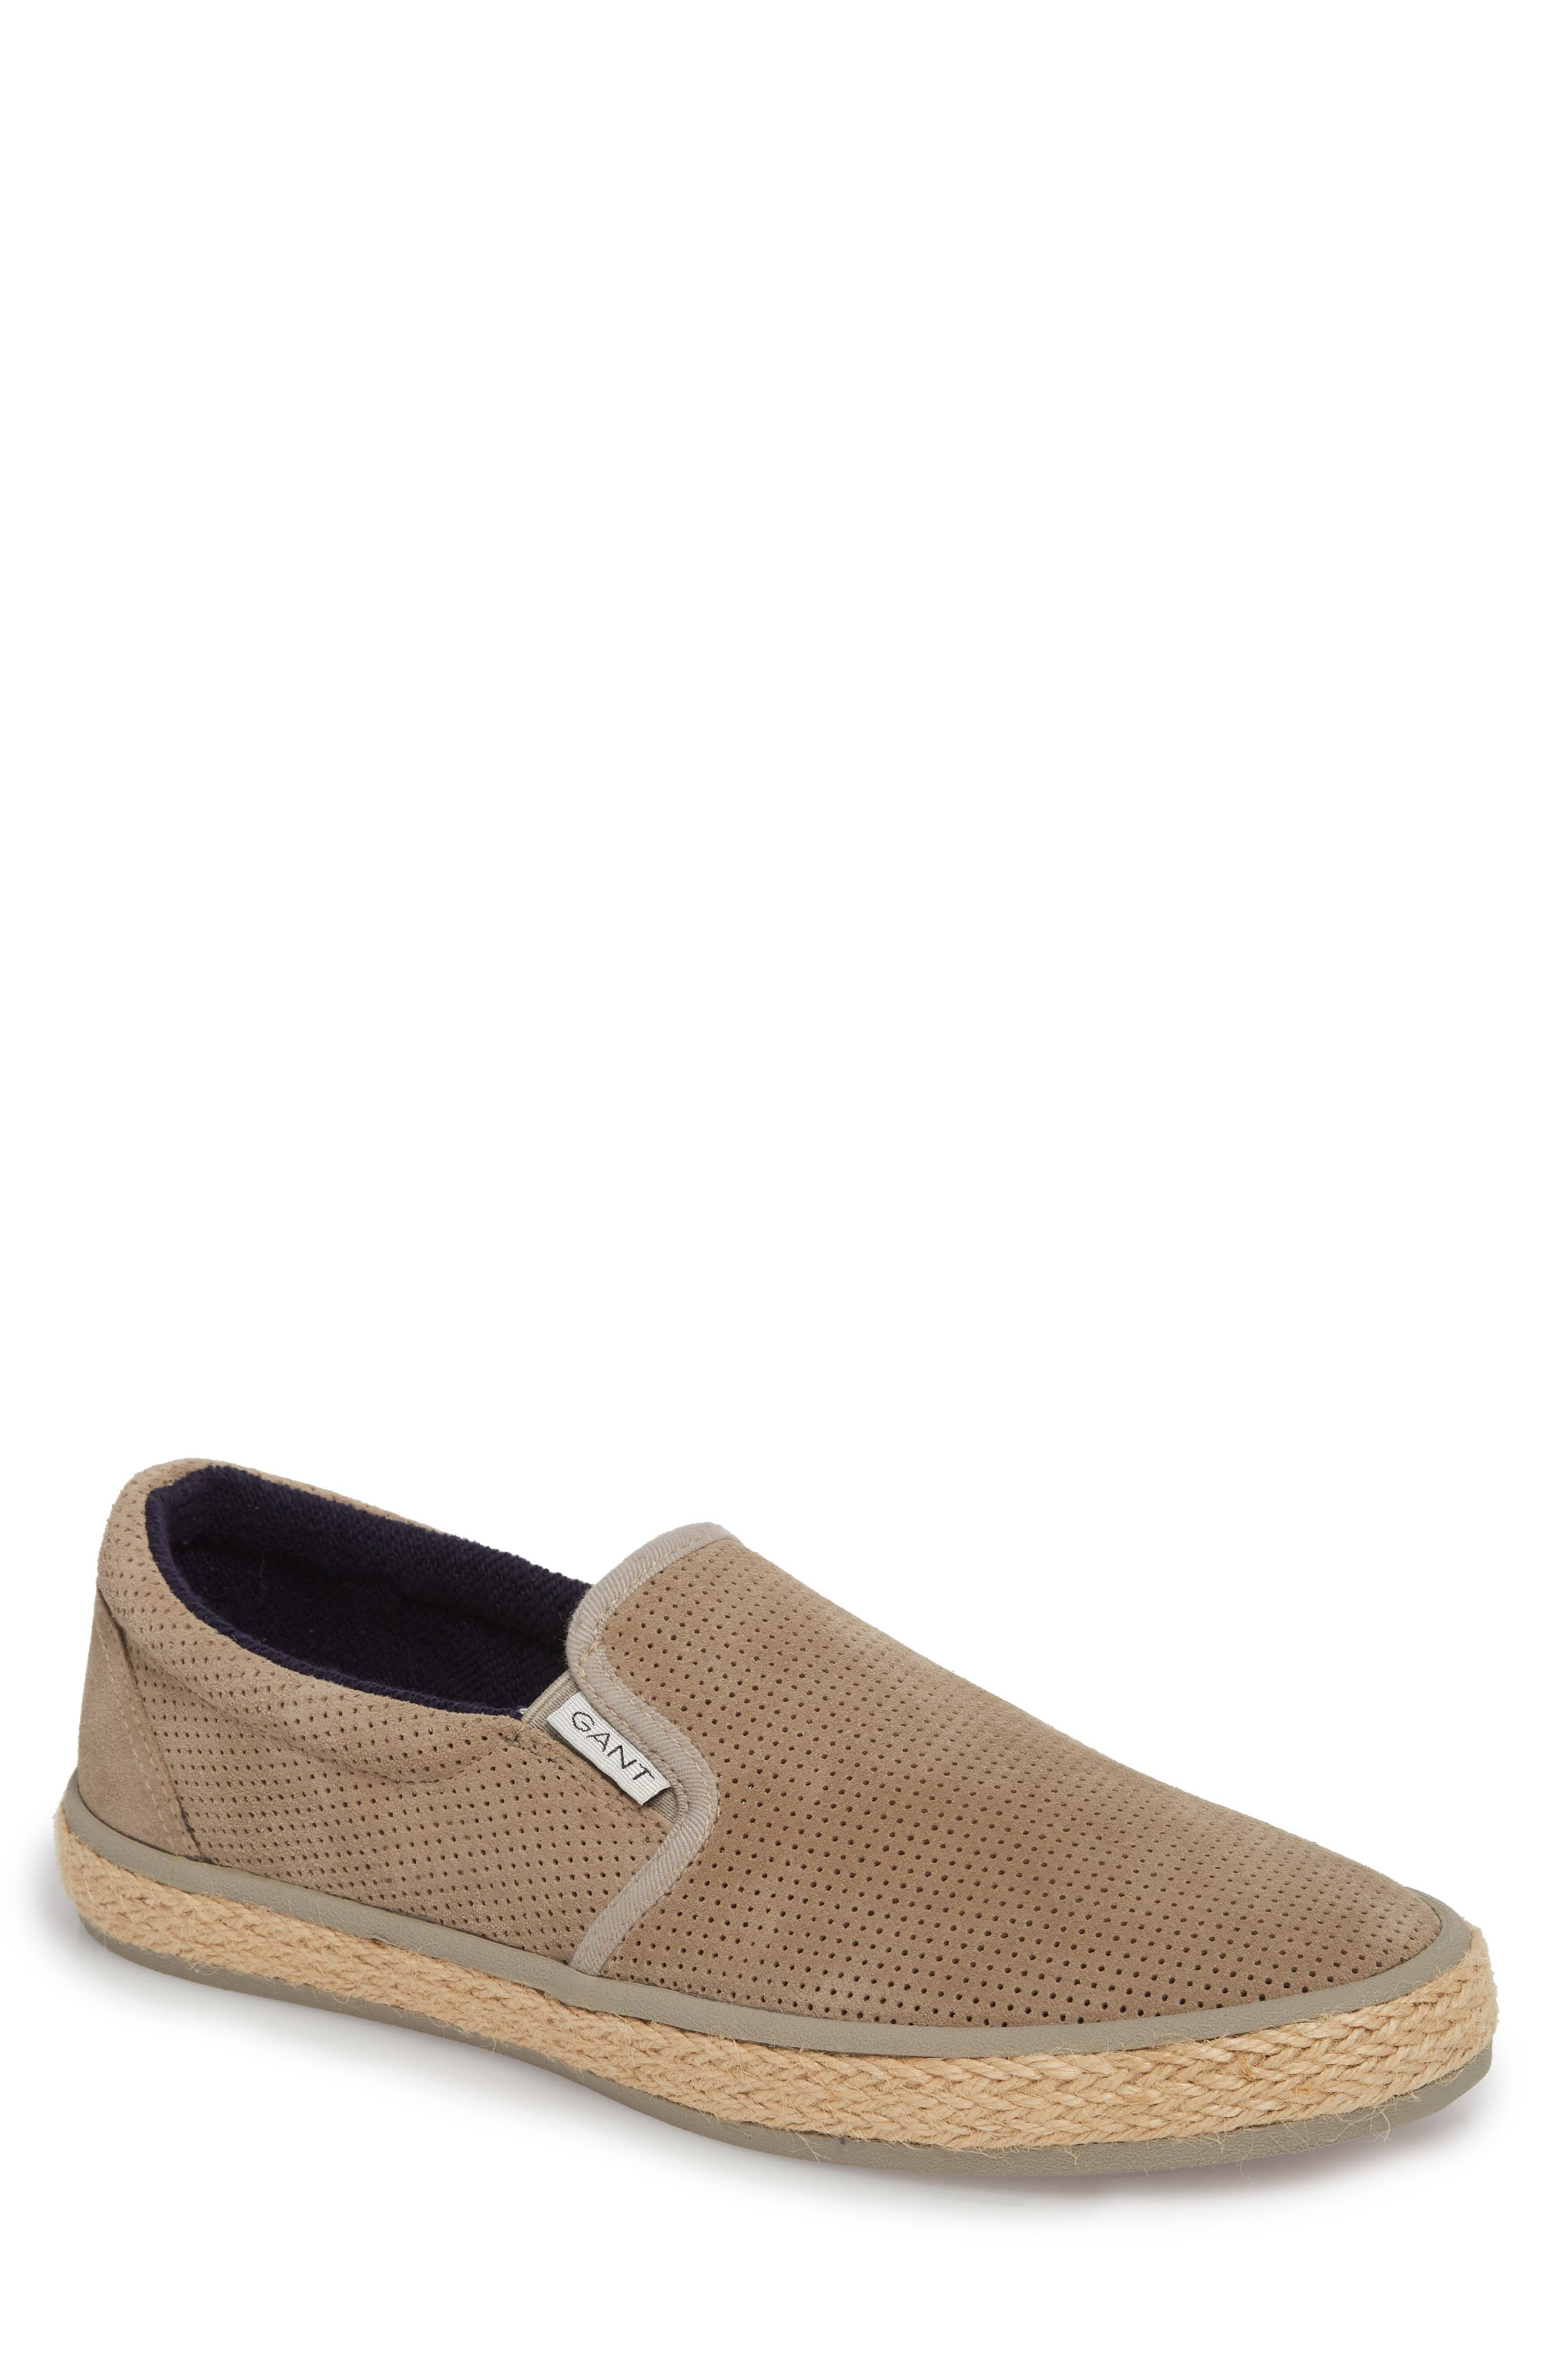 Master Perforated Slip-On Sneaker,                             Main thumbnail 1, color,                             209